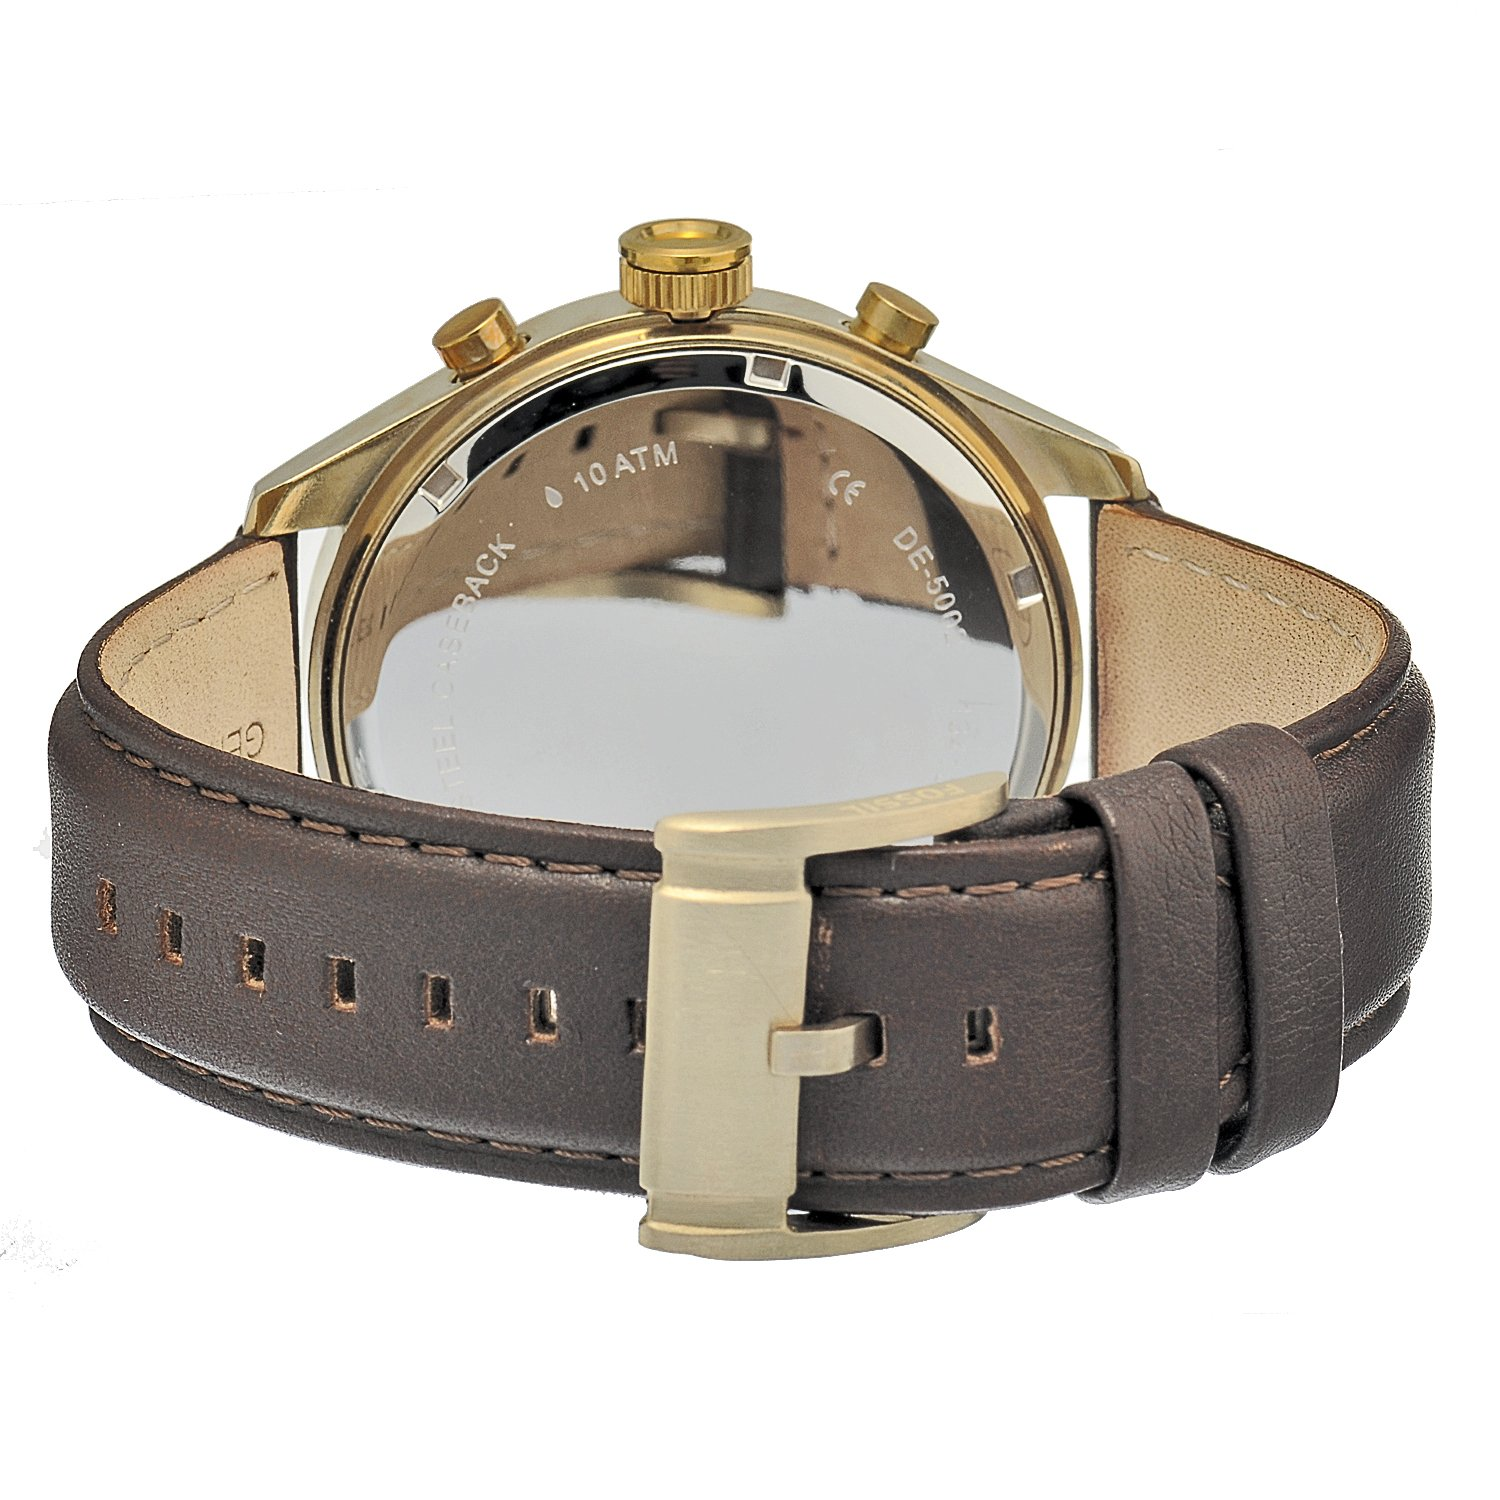 Fossil Leather Watch Ladies Fossil Dress Leather Watch